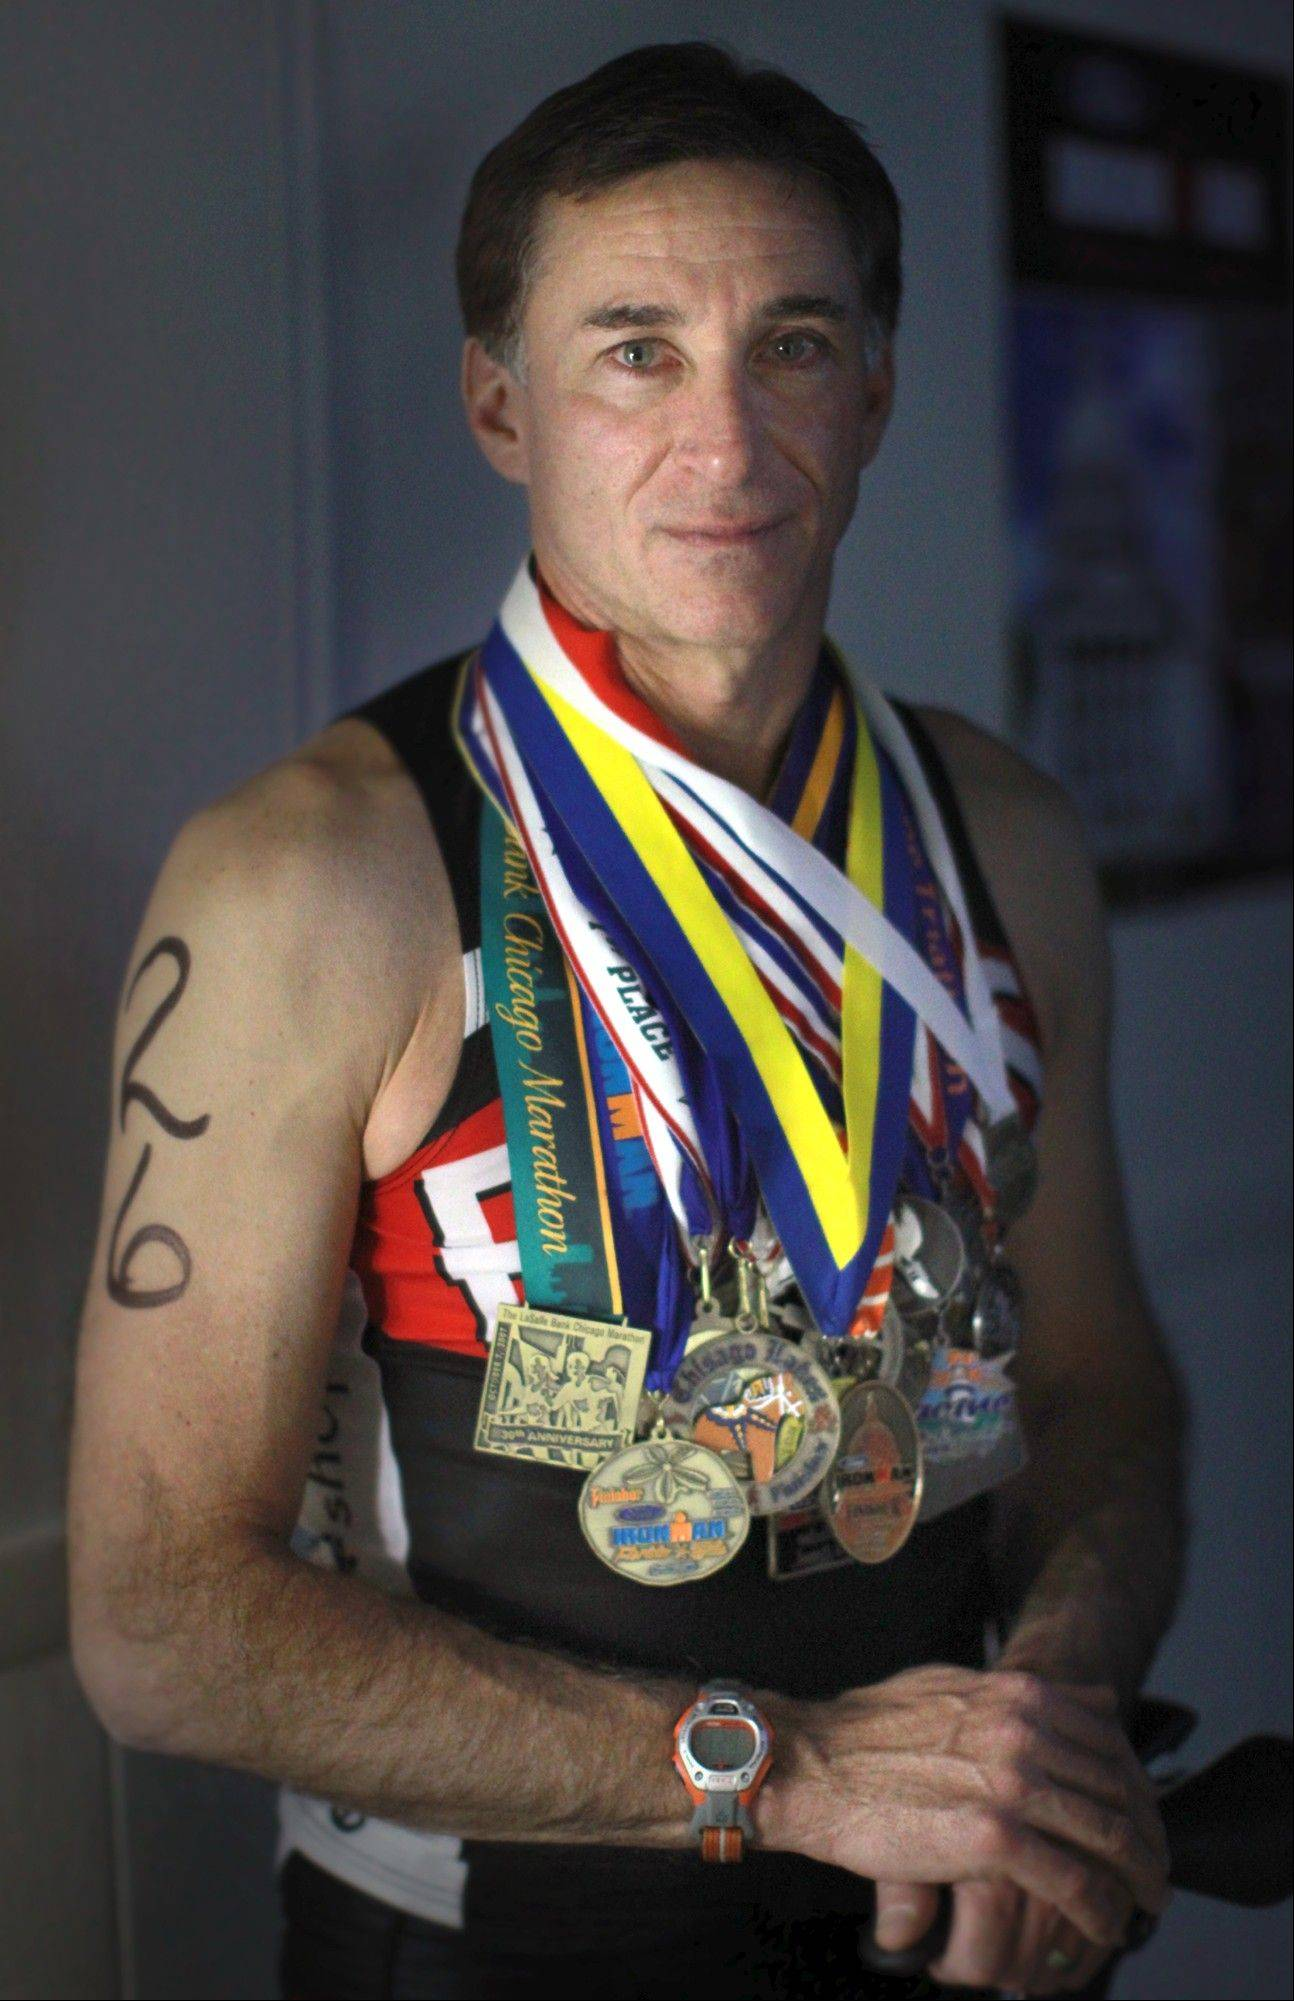 Dave Voss typically doesn't think of himself as a master triathlete. More of a hard worker. He's been fairly active all his 51 years -- a little soccer, baseball, jogging, biking and chasing after bad guys as a Minneapolis cop.